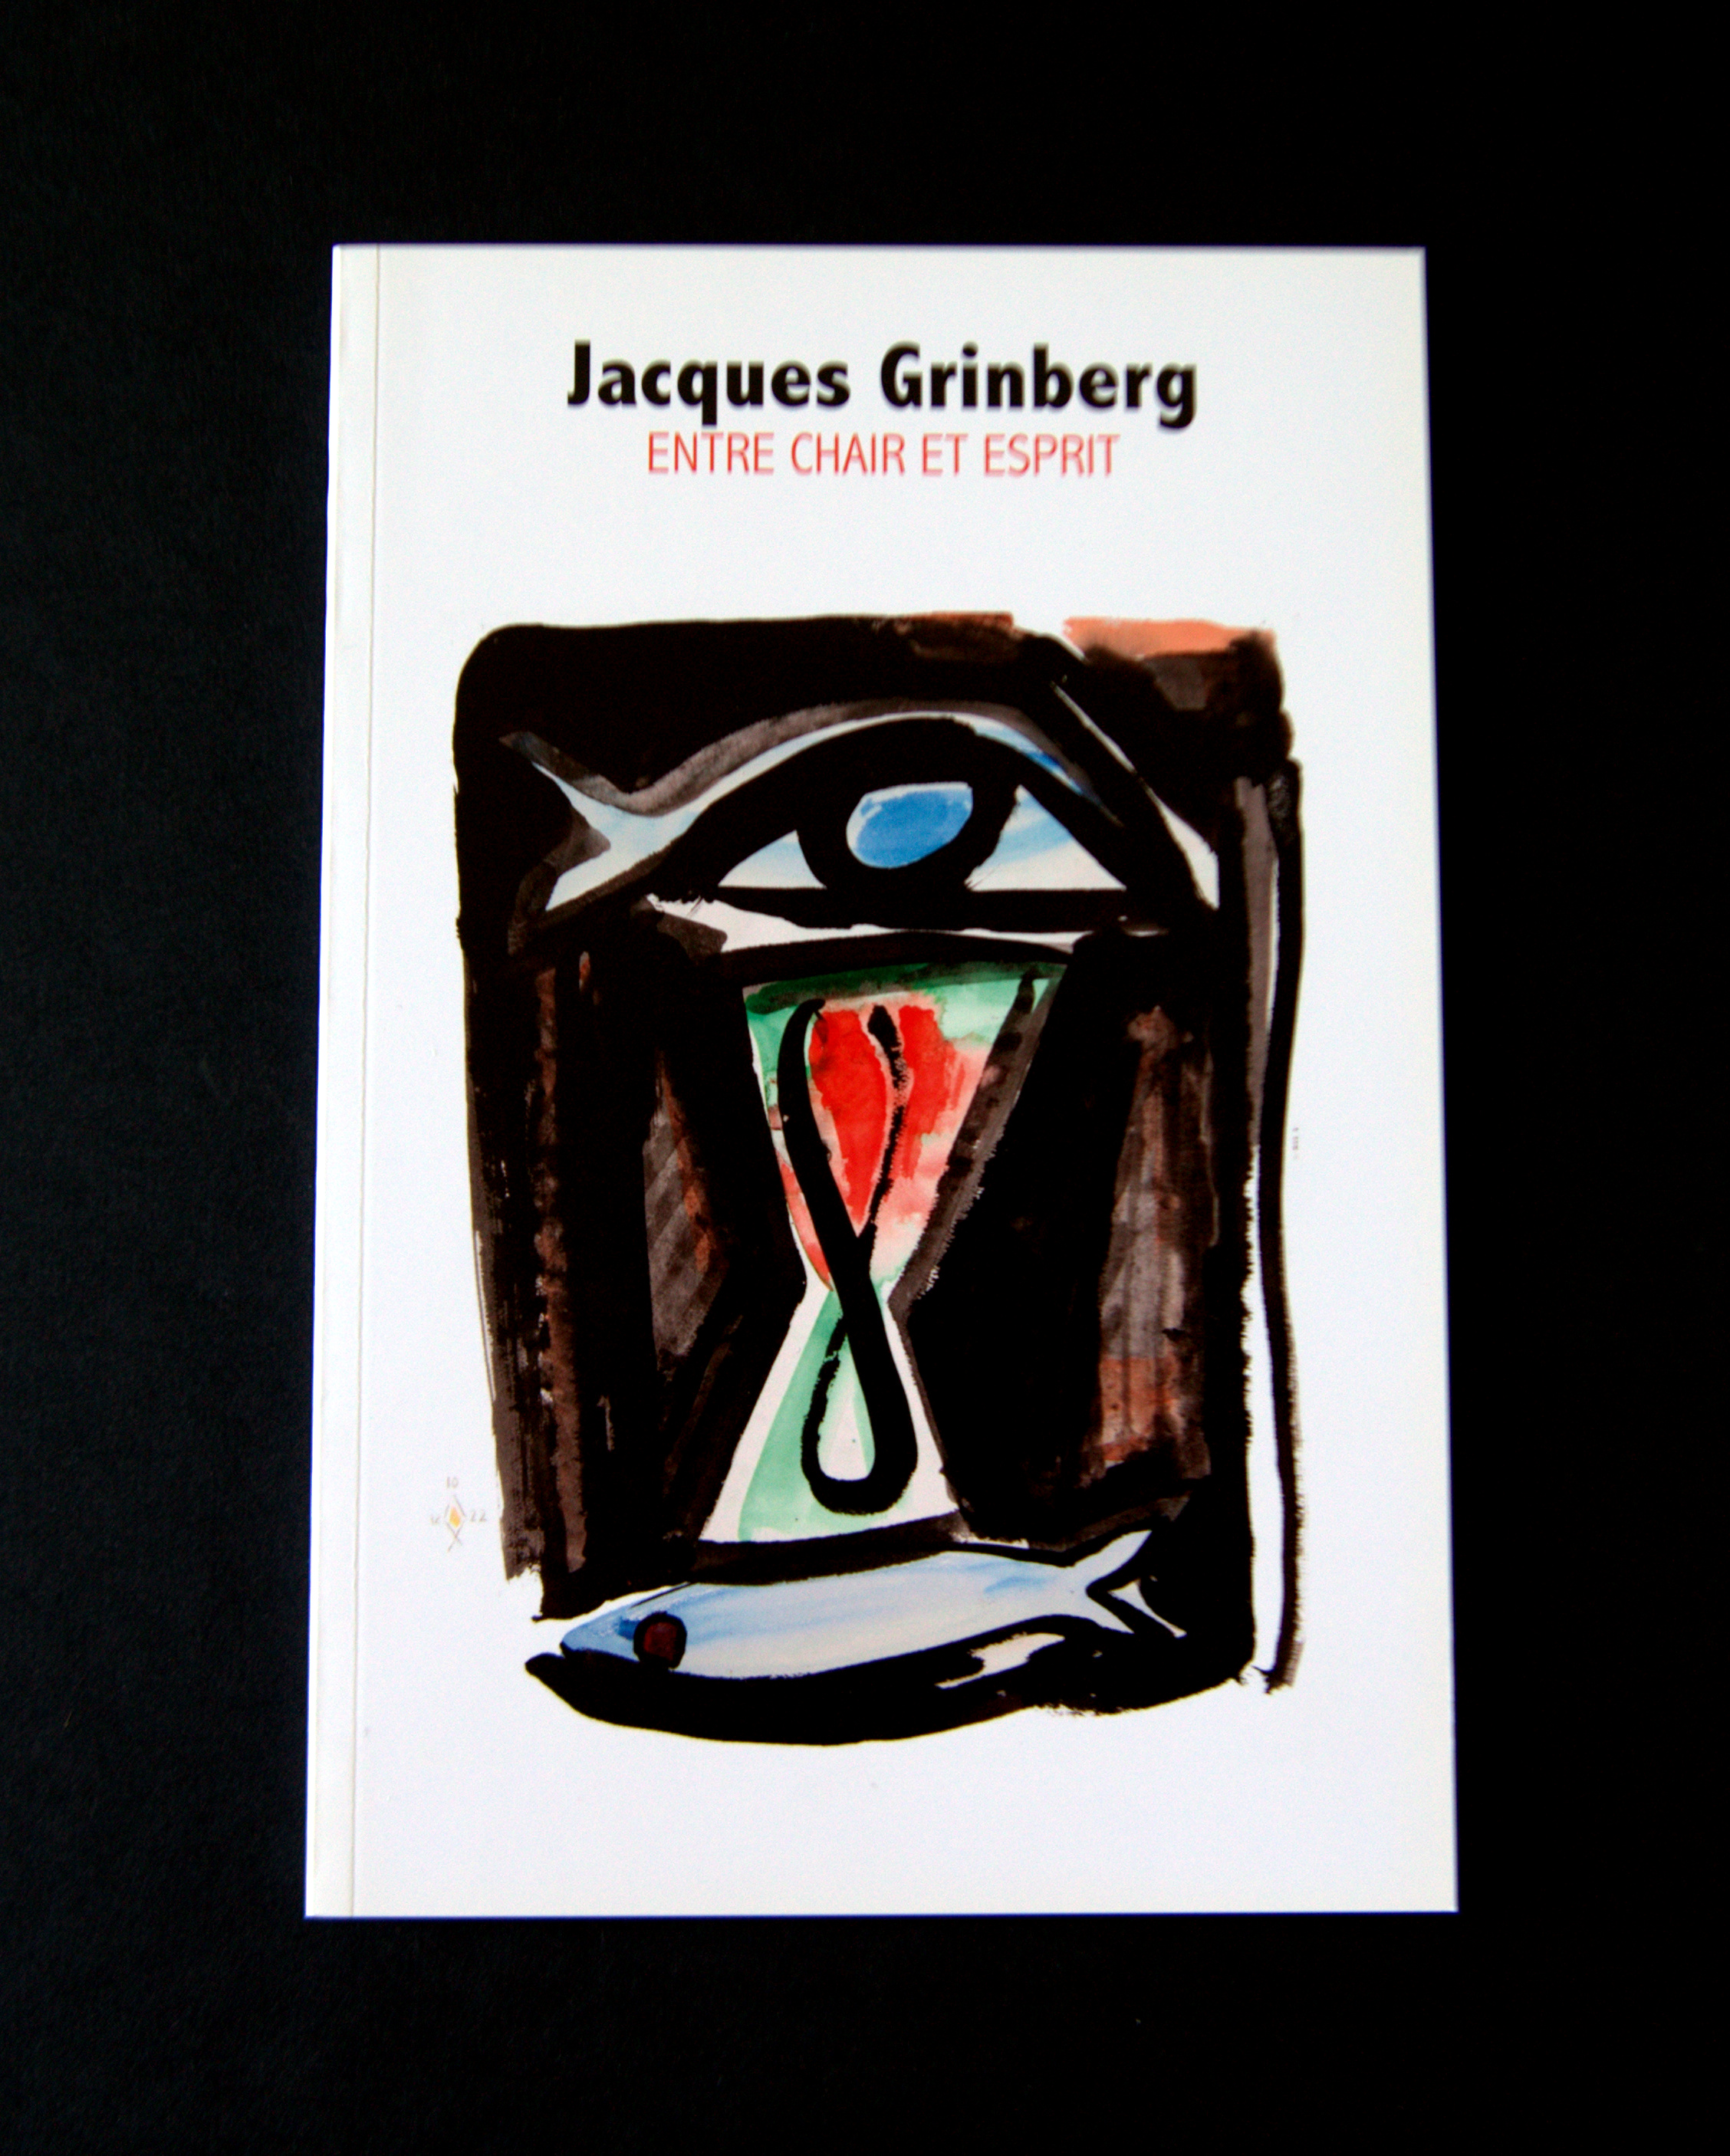 Jacques Grinberg